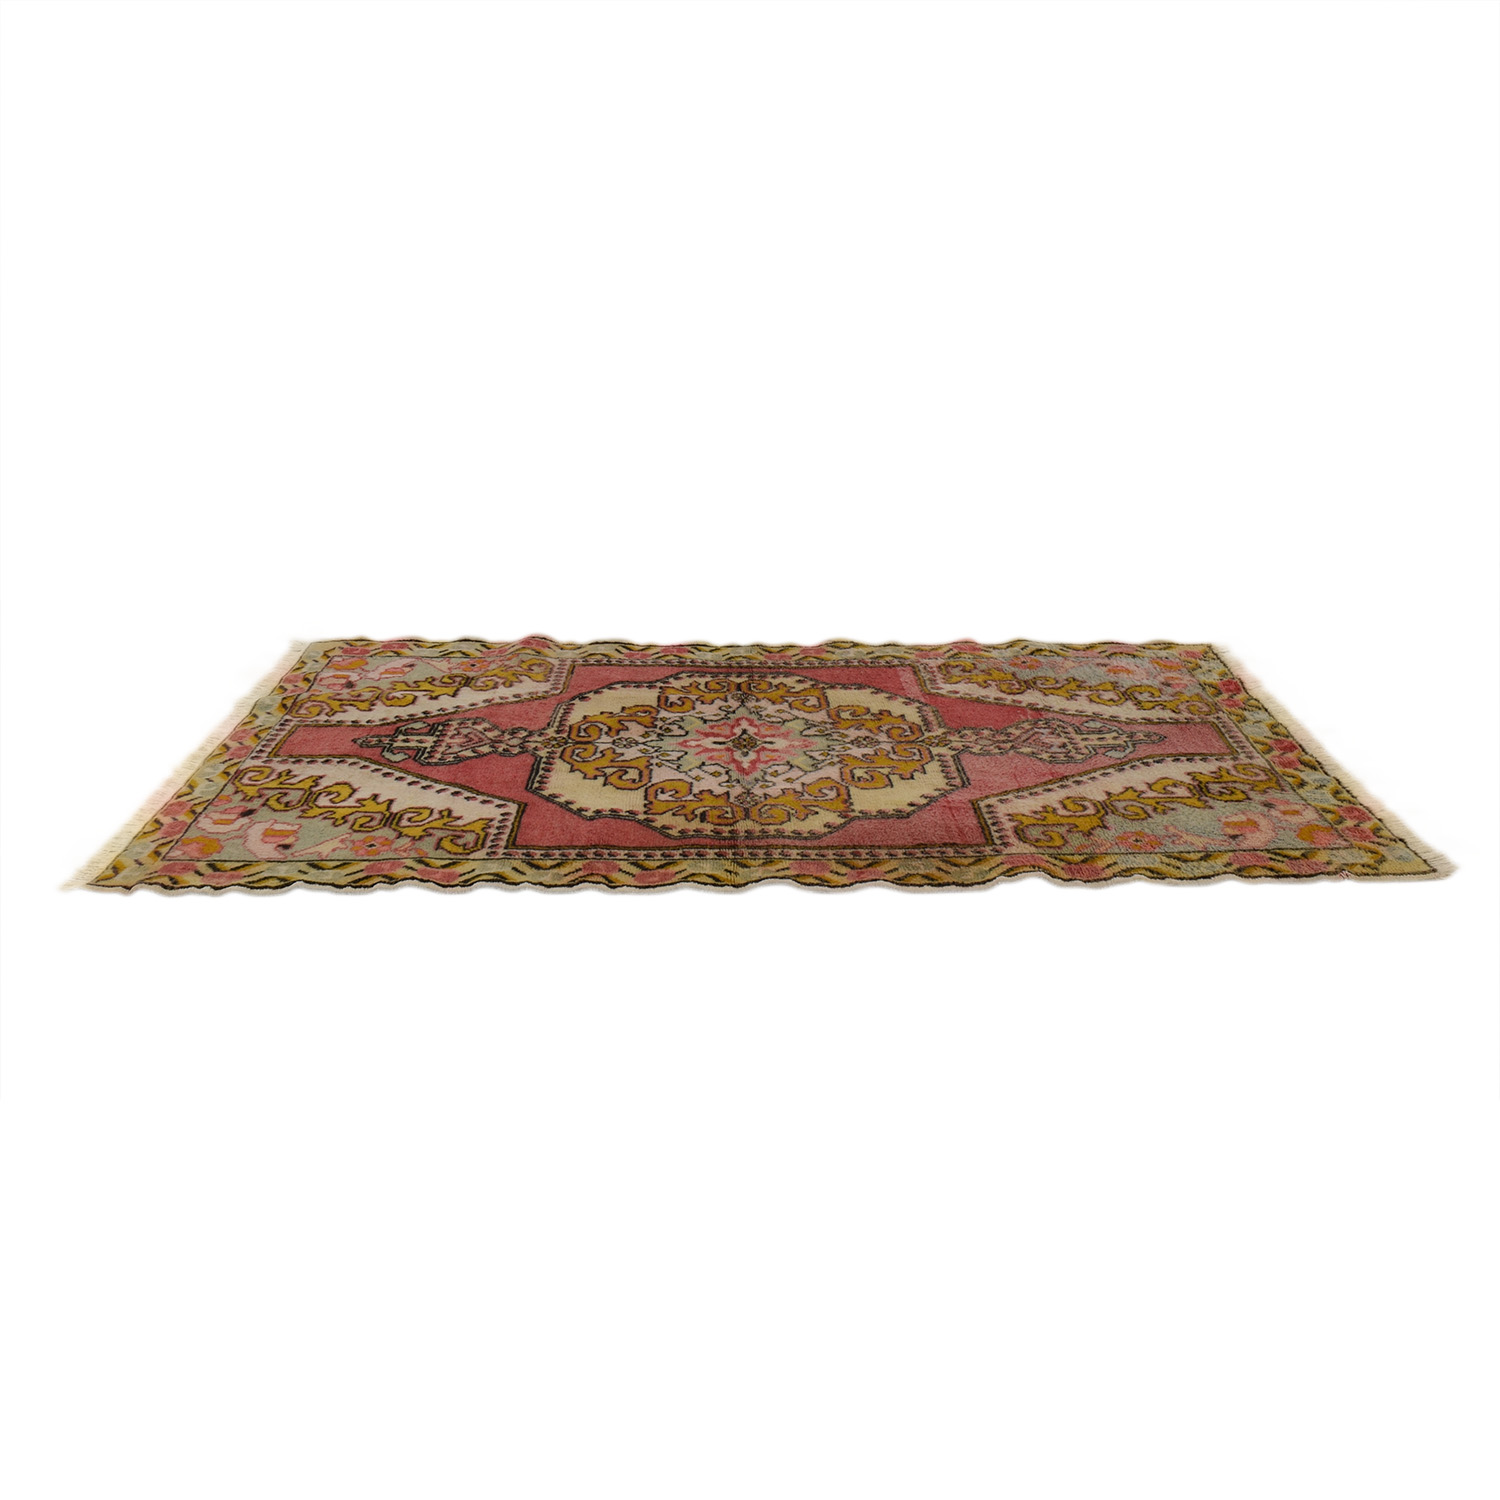 Vintage Turkish Anatolian Multi-Colored Rug Rugs